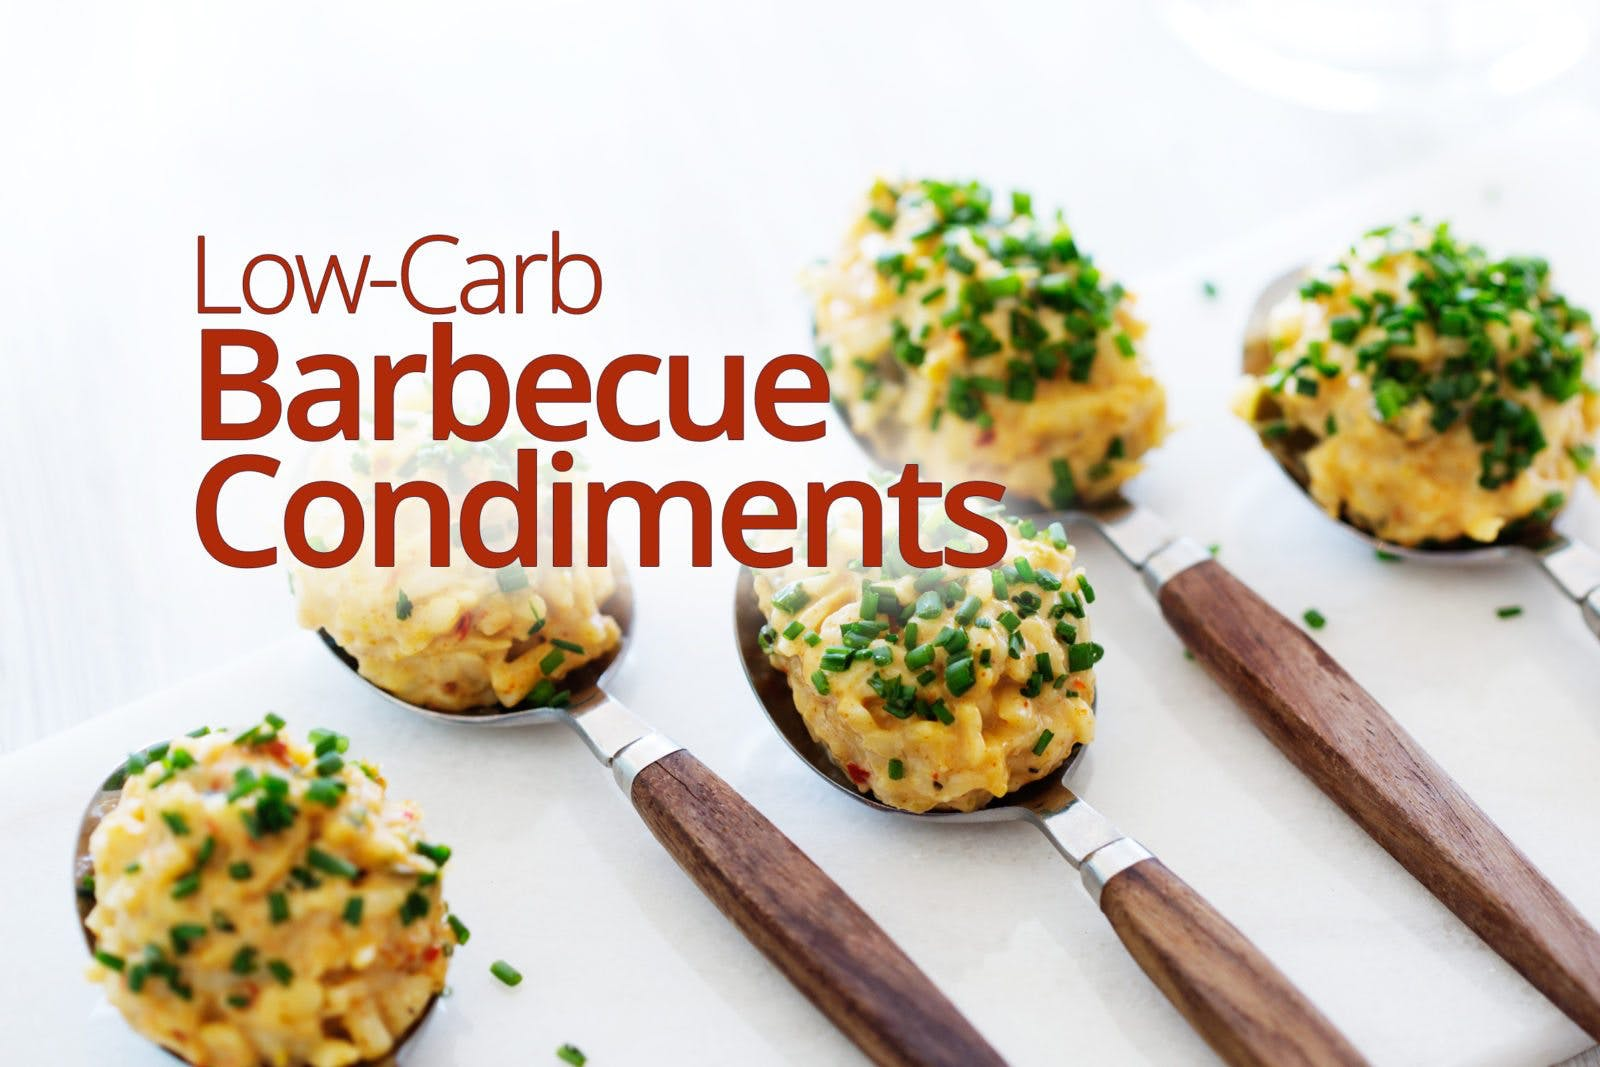 Low-carb barbecue condiments